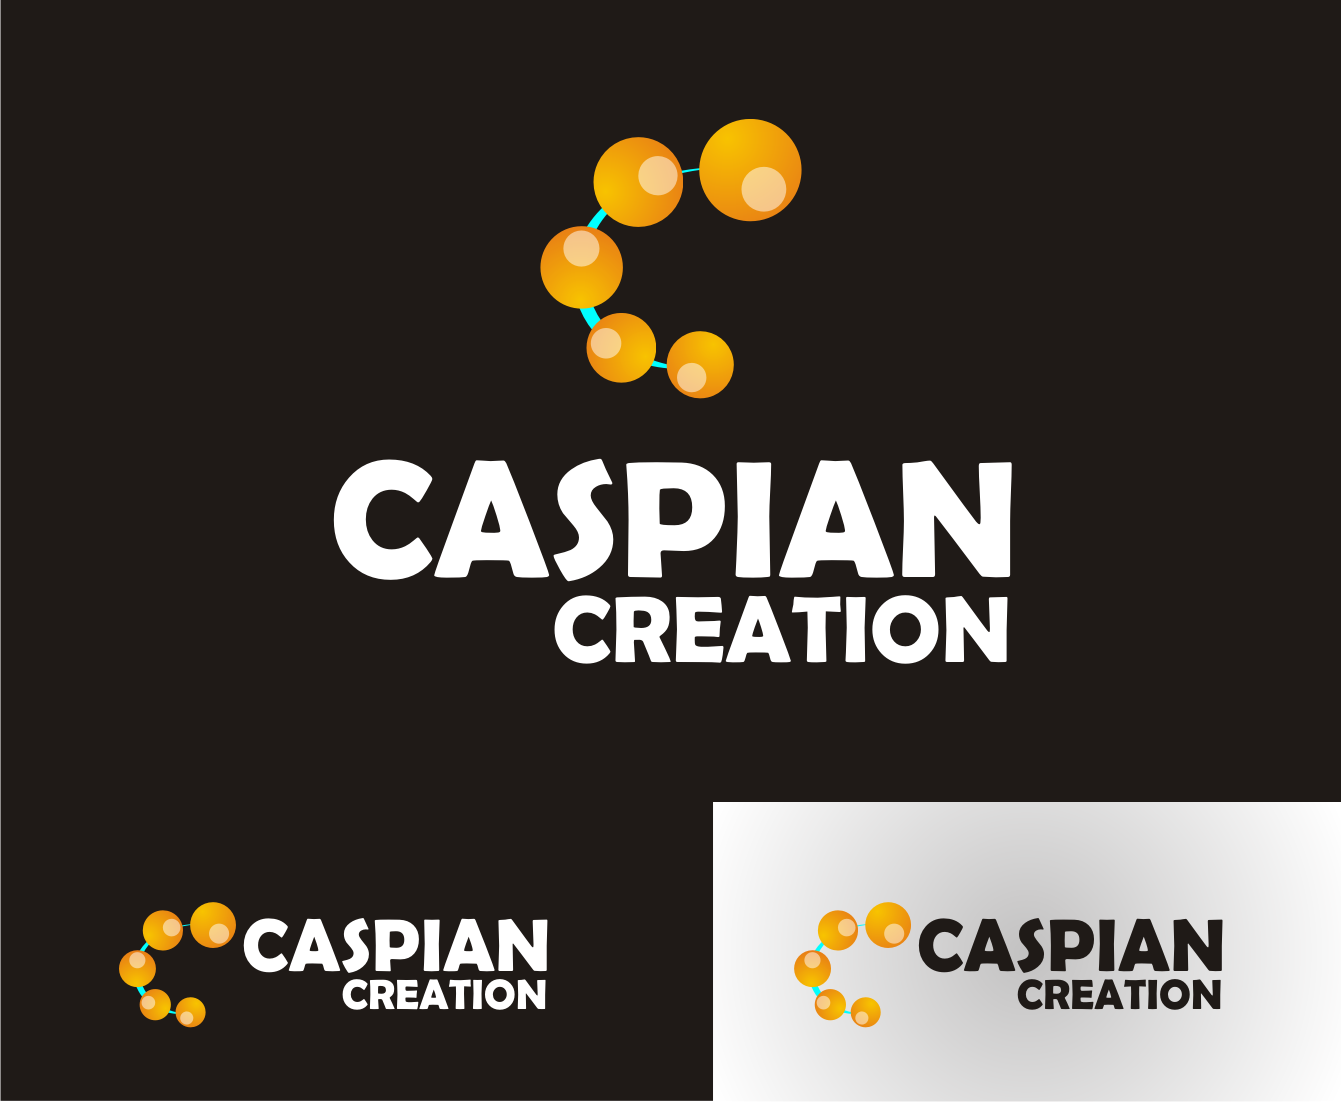 Logo Design by Nthus Nthis - Entry No. 12 in the Logo Design Contest Creative Logo Design for Caspian Creations.